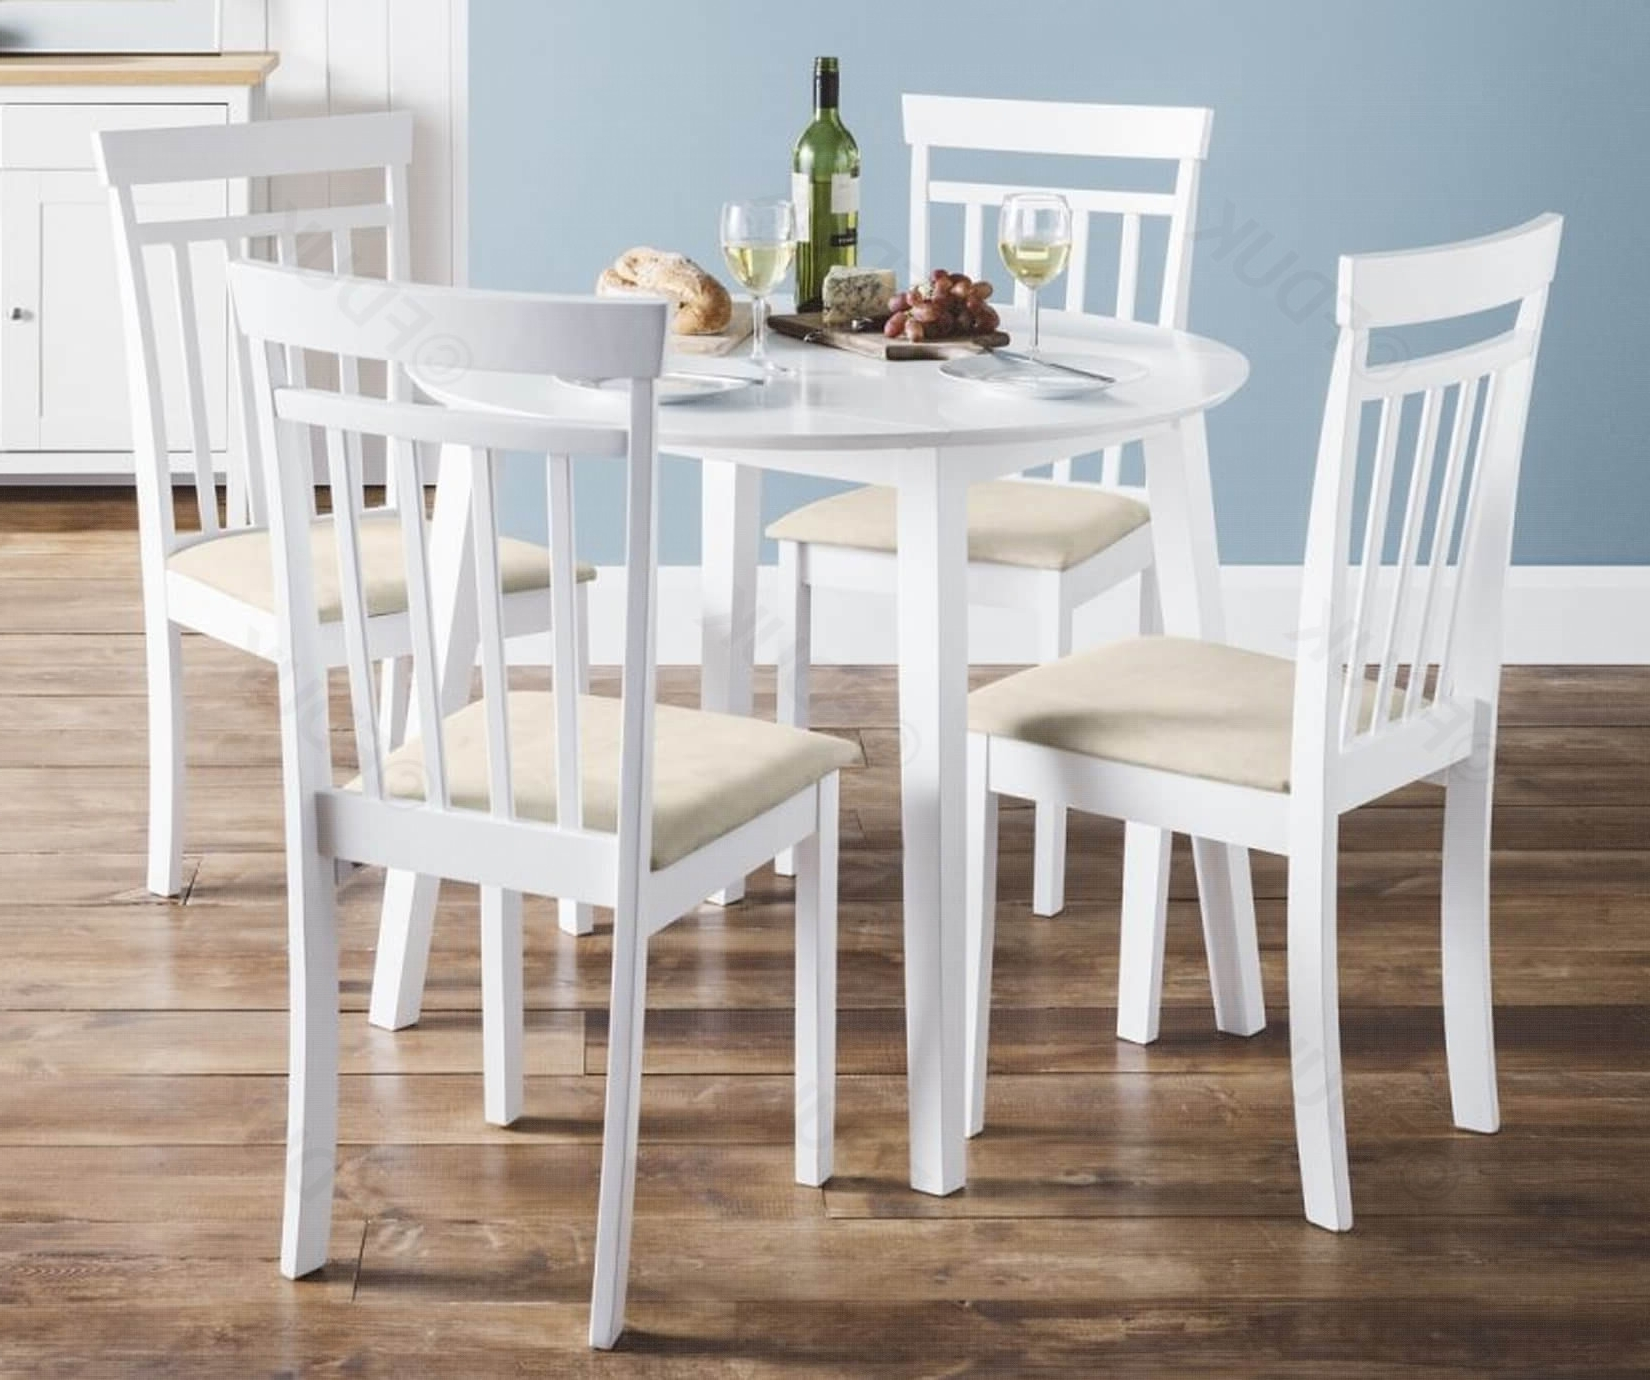 Coast White Drop Leaf Dining Table With 2 Chairs (View 11 of 25)